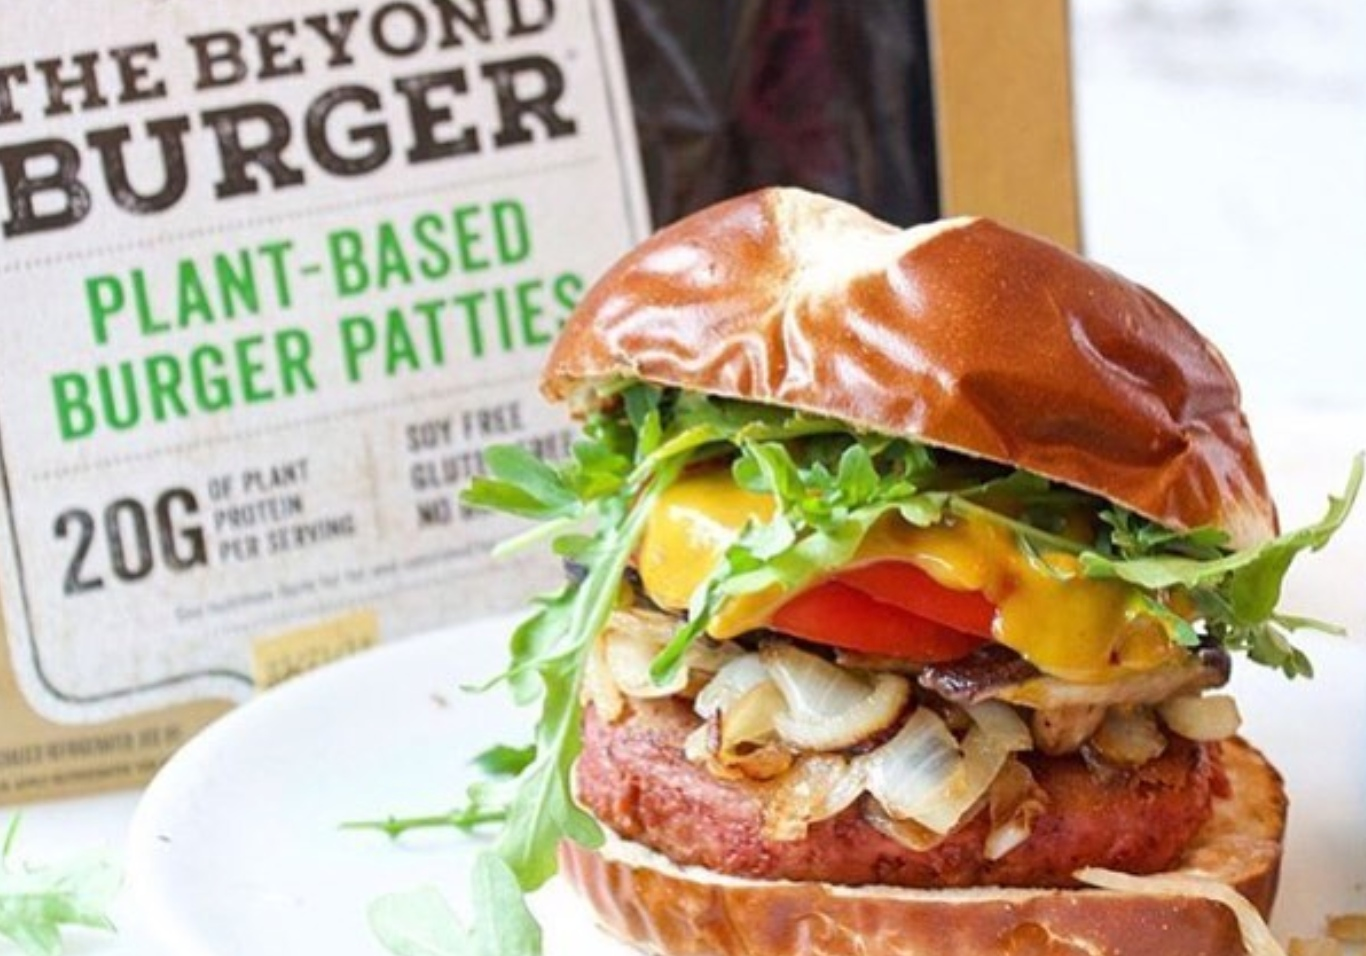 The Beyond Burger from Beyond Meat